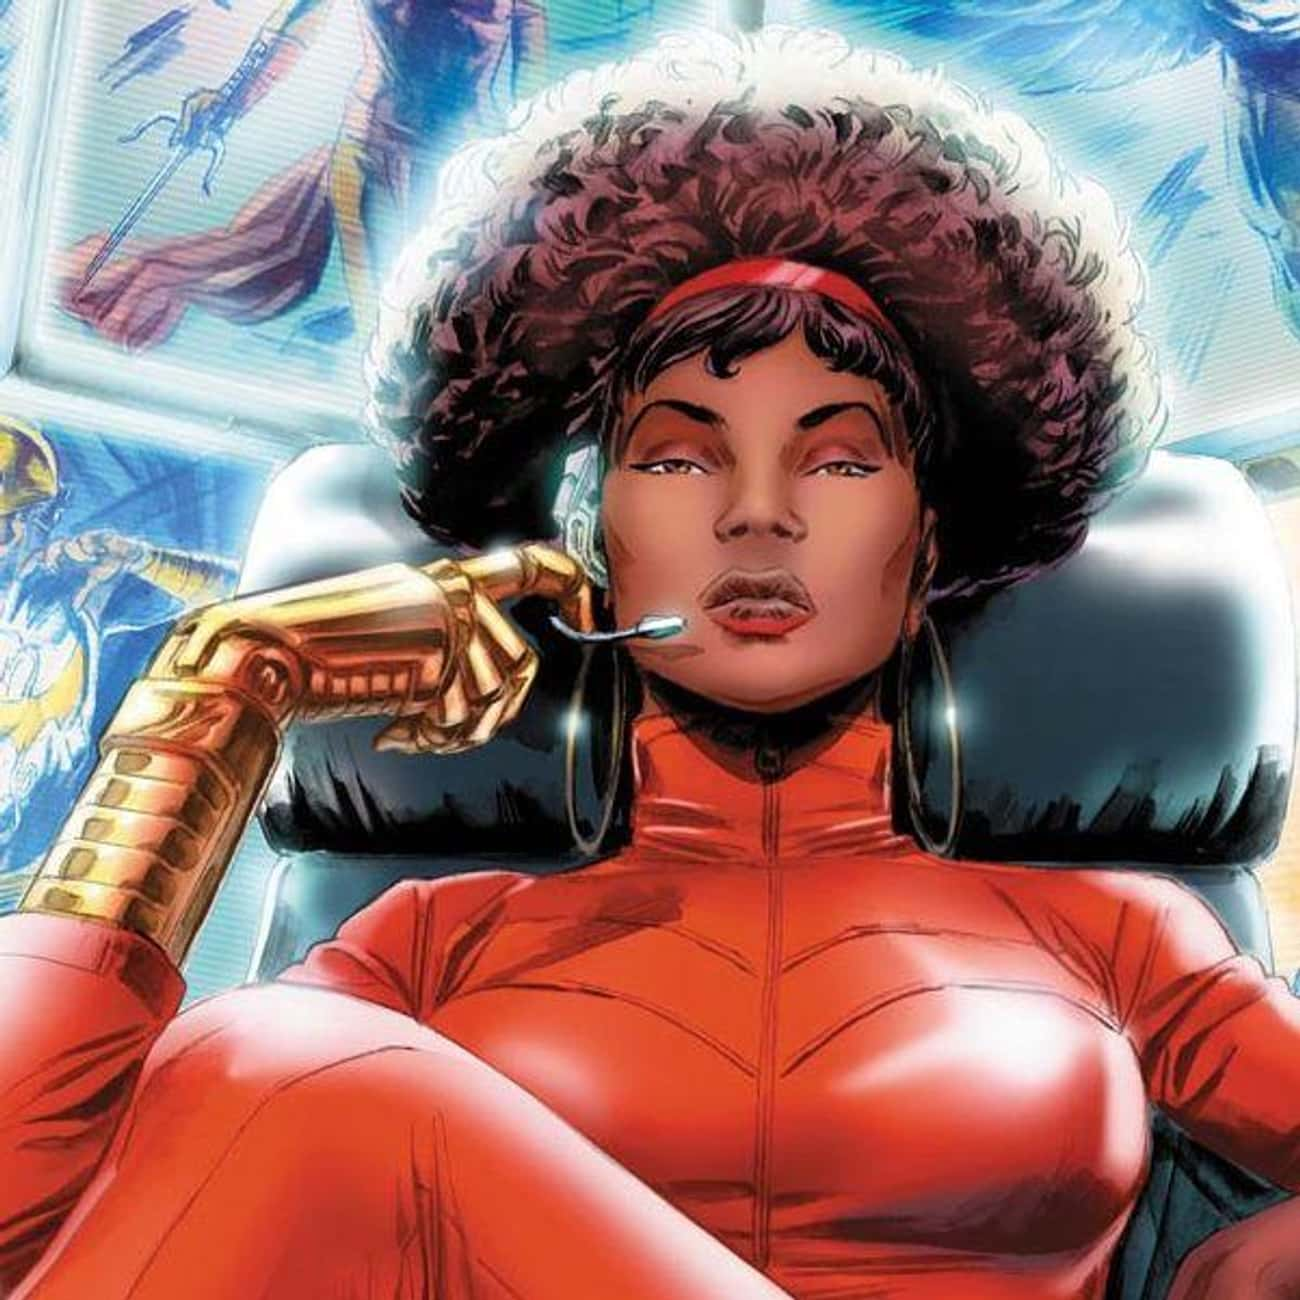 Misty Knight is listed (or ranked) 4 on the list Greatest Black Female Superheroes